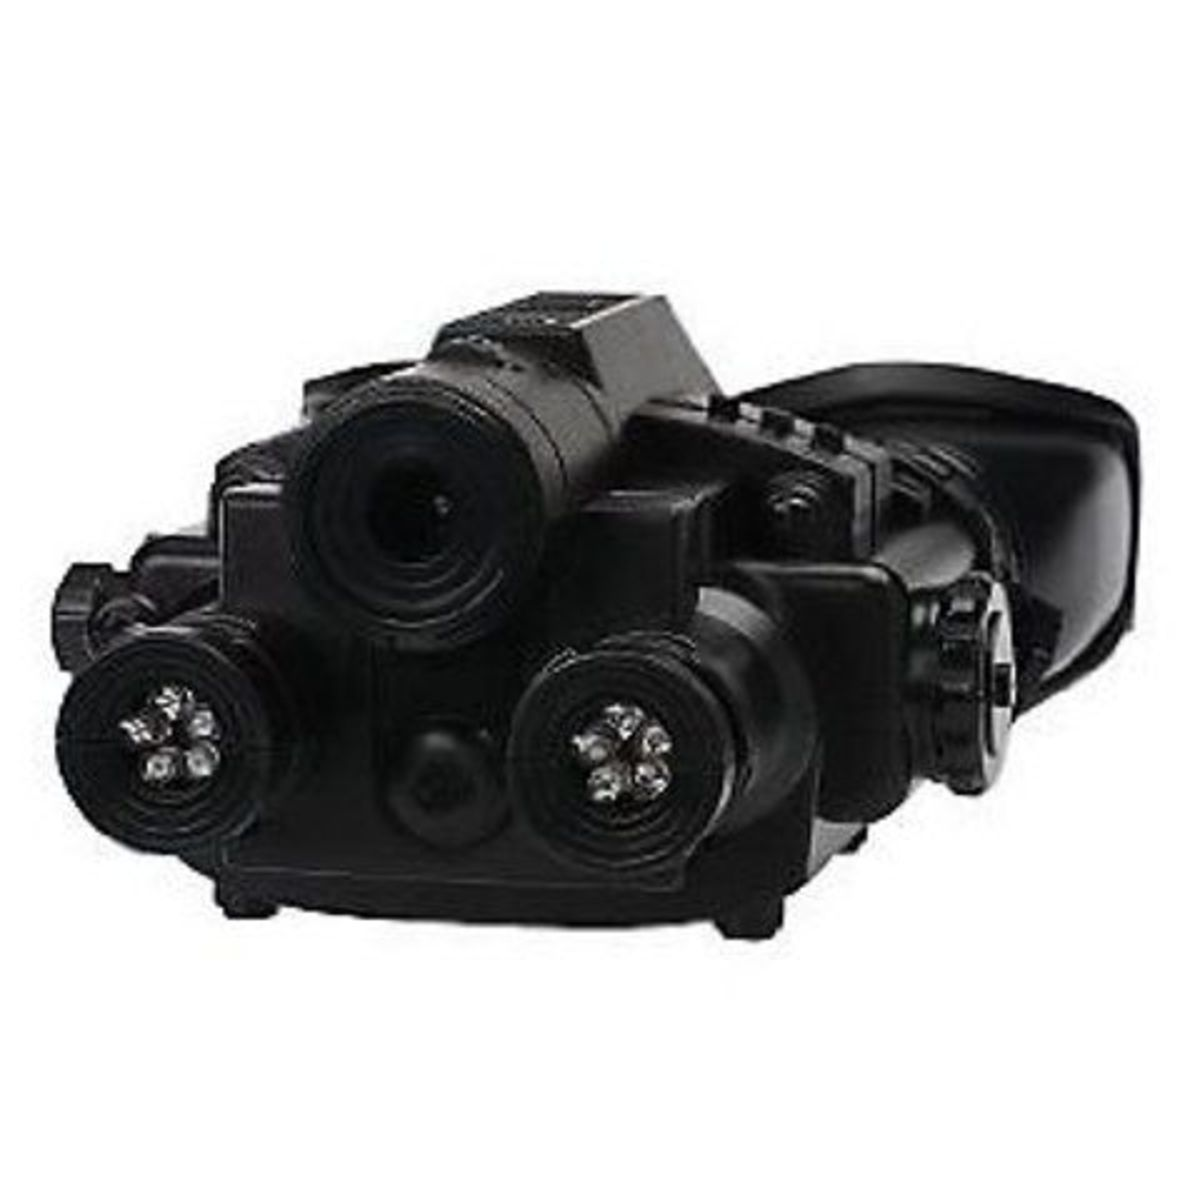 Spy Net Recording Night Vision Goggles: front view